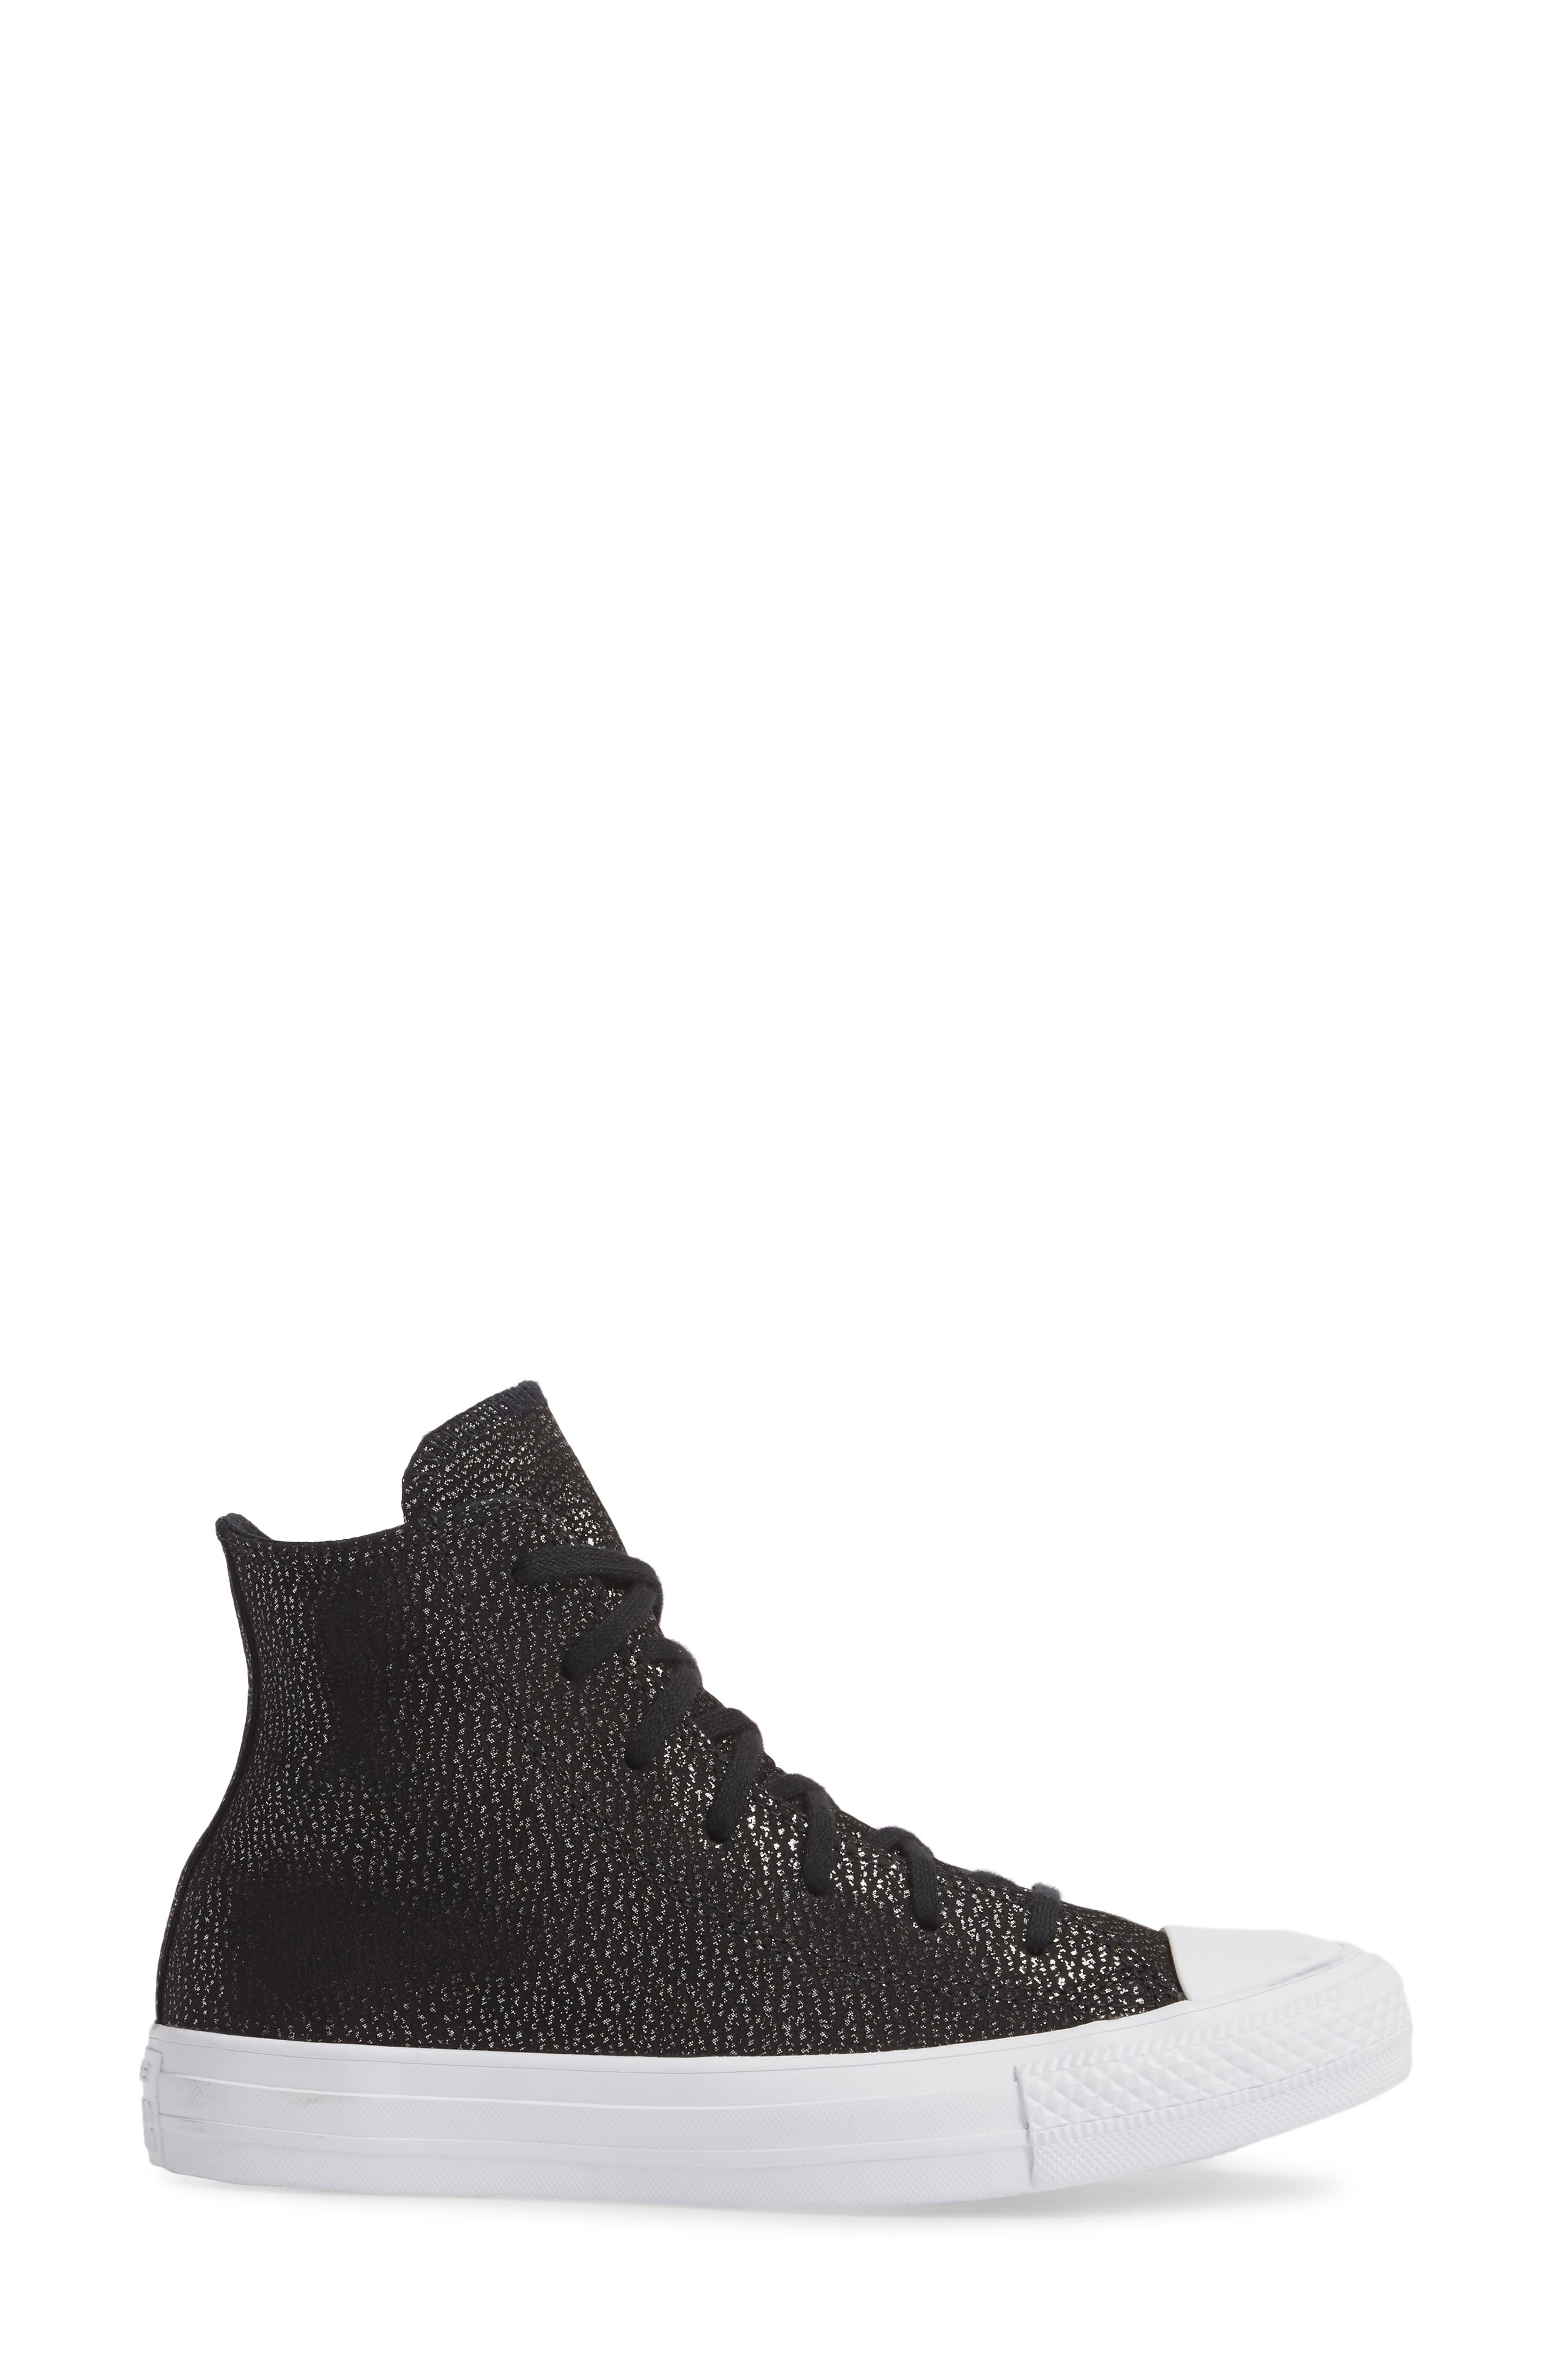 Chuck Taylor<sup>®</sup> All Star<sup>®</sup> Tipped Metallic High Top Sneaker,                             Alternate thumbnail 5, color,